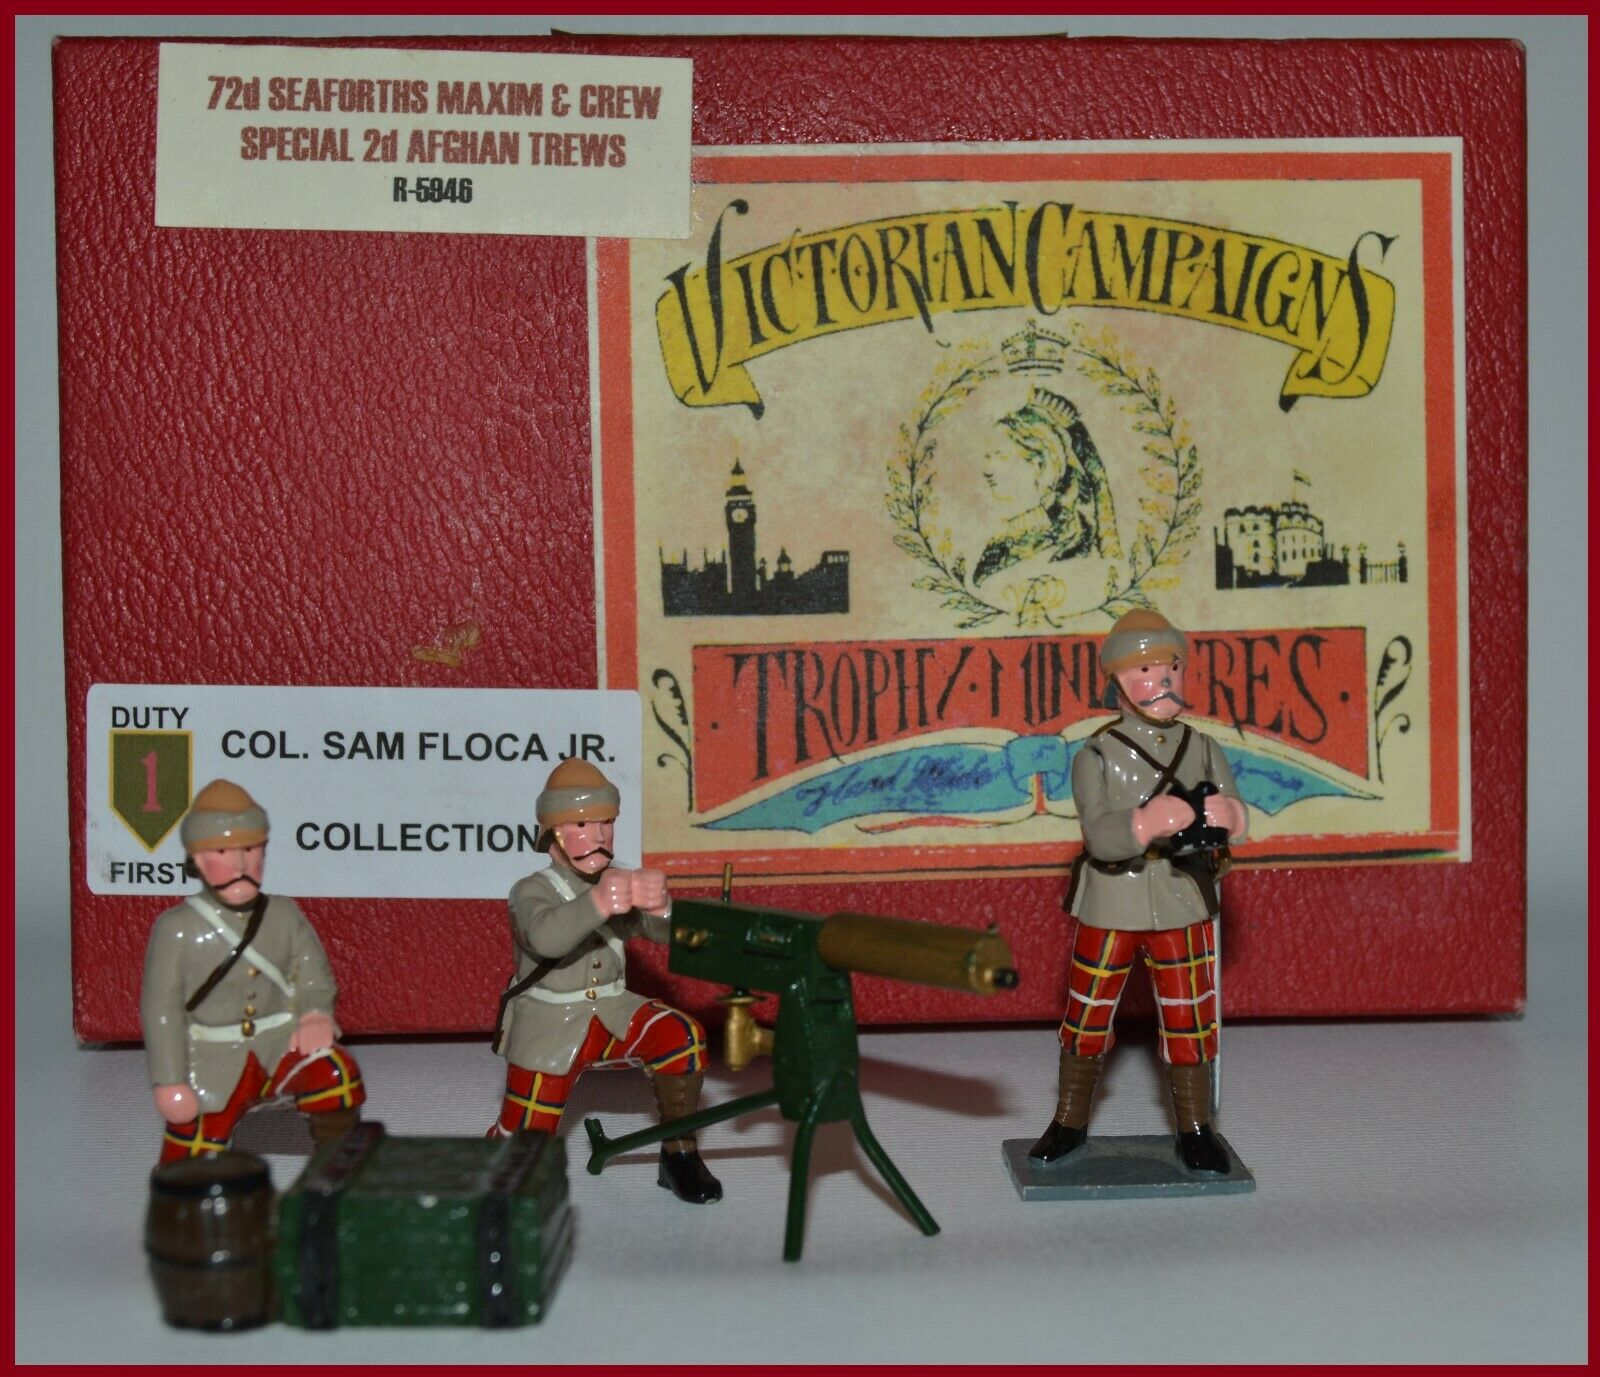 Trophy of Wales  72nd Seaforths Maxim Gun Crew  Floca Collection AA-10424